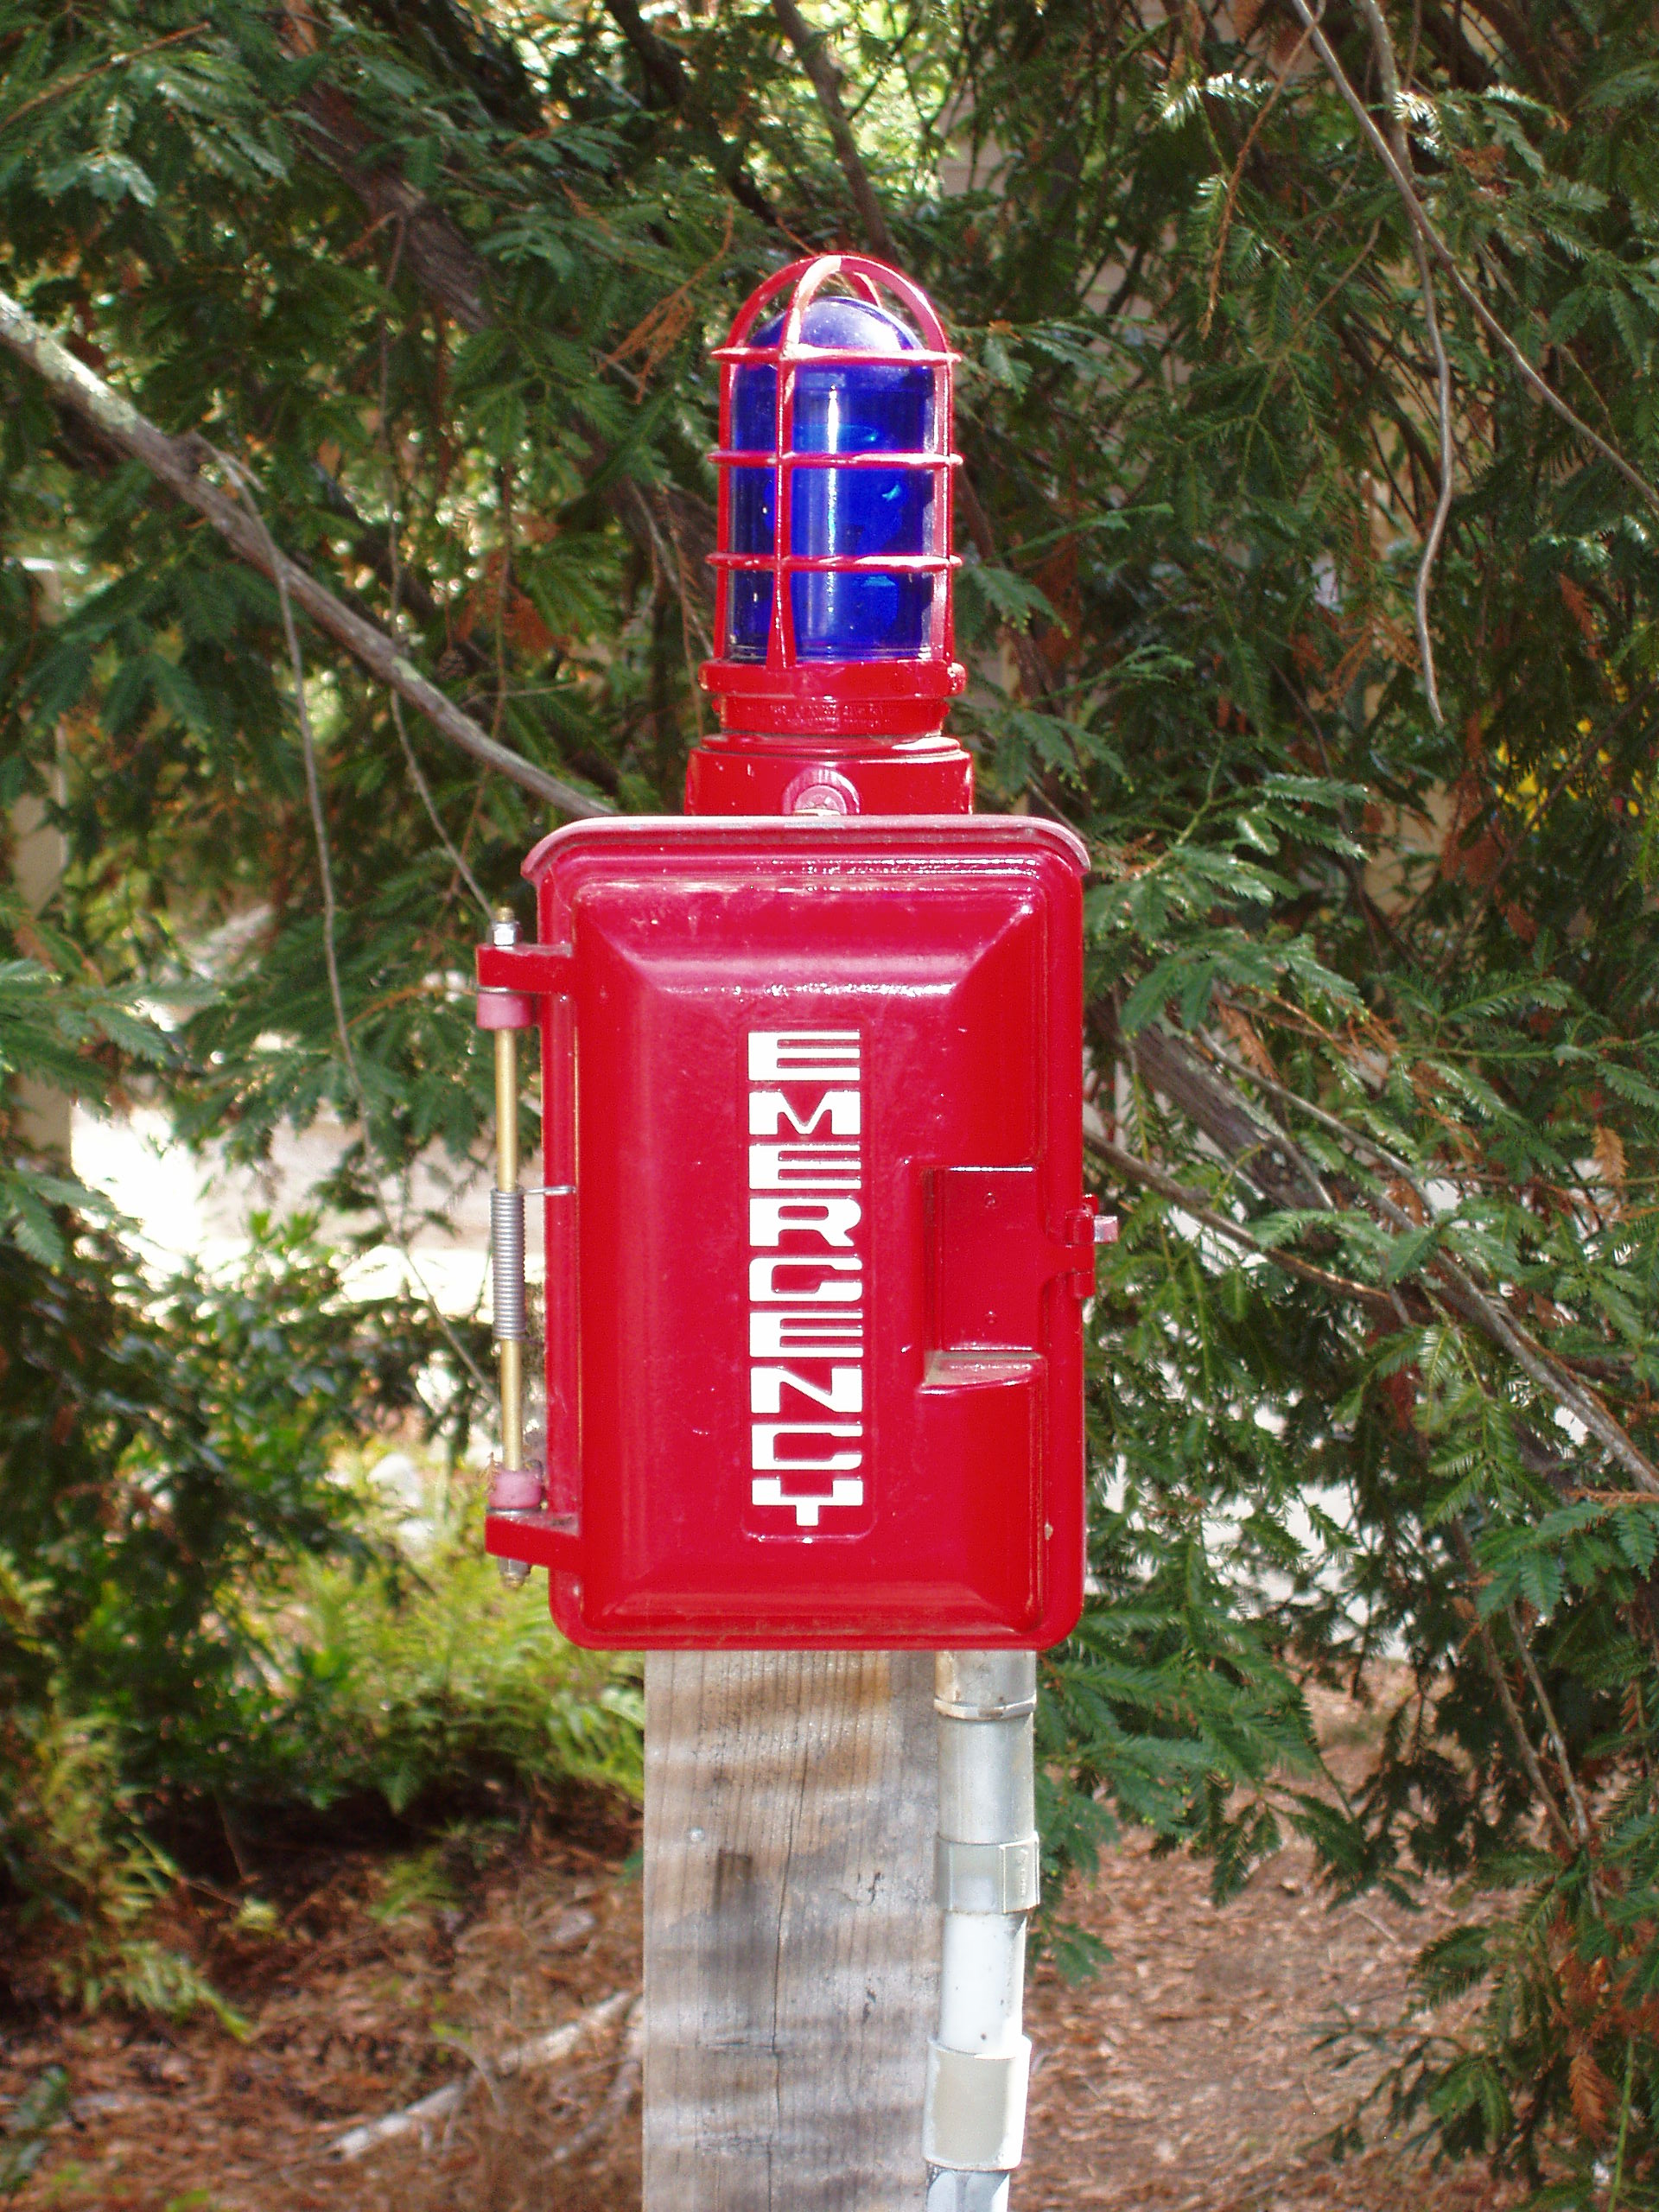 Photo of post-mounted emergency phone